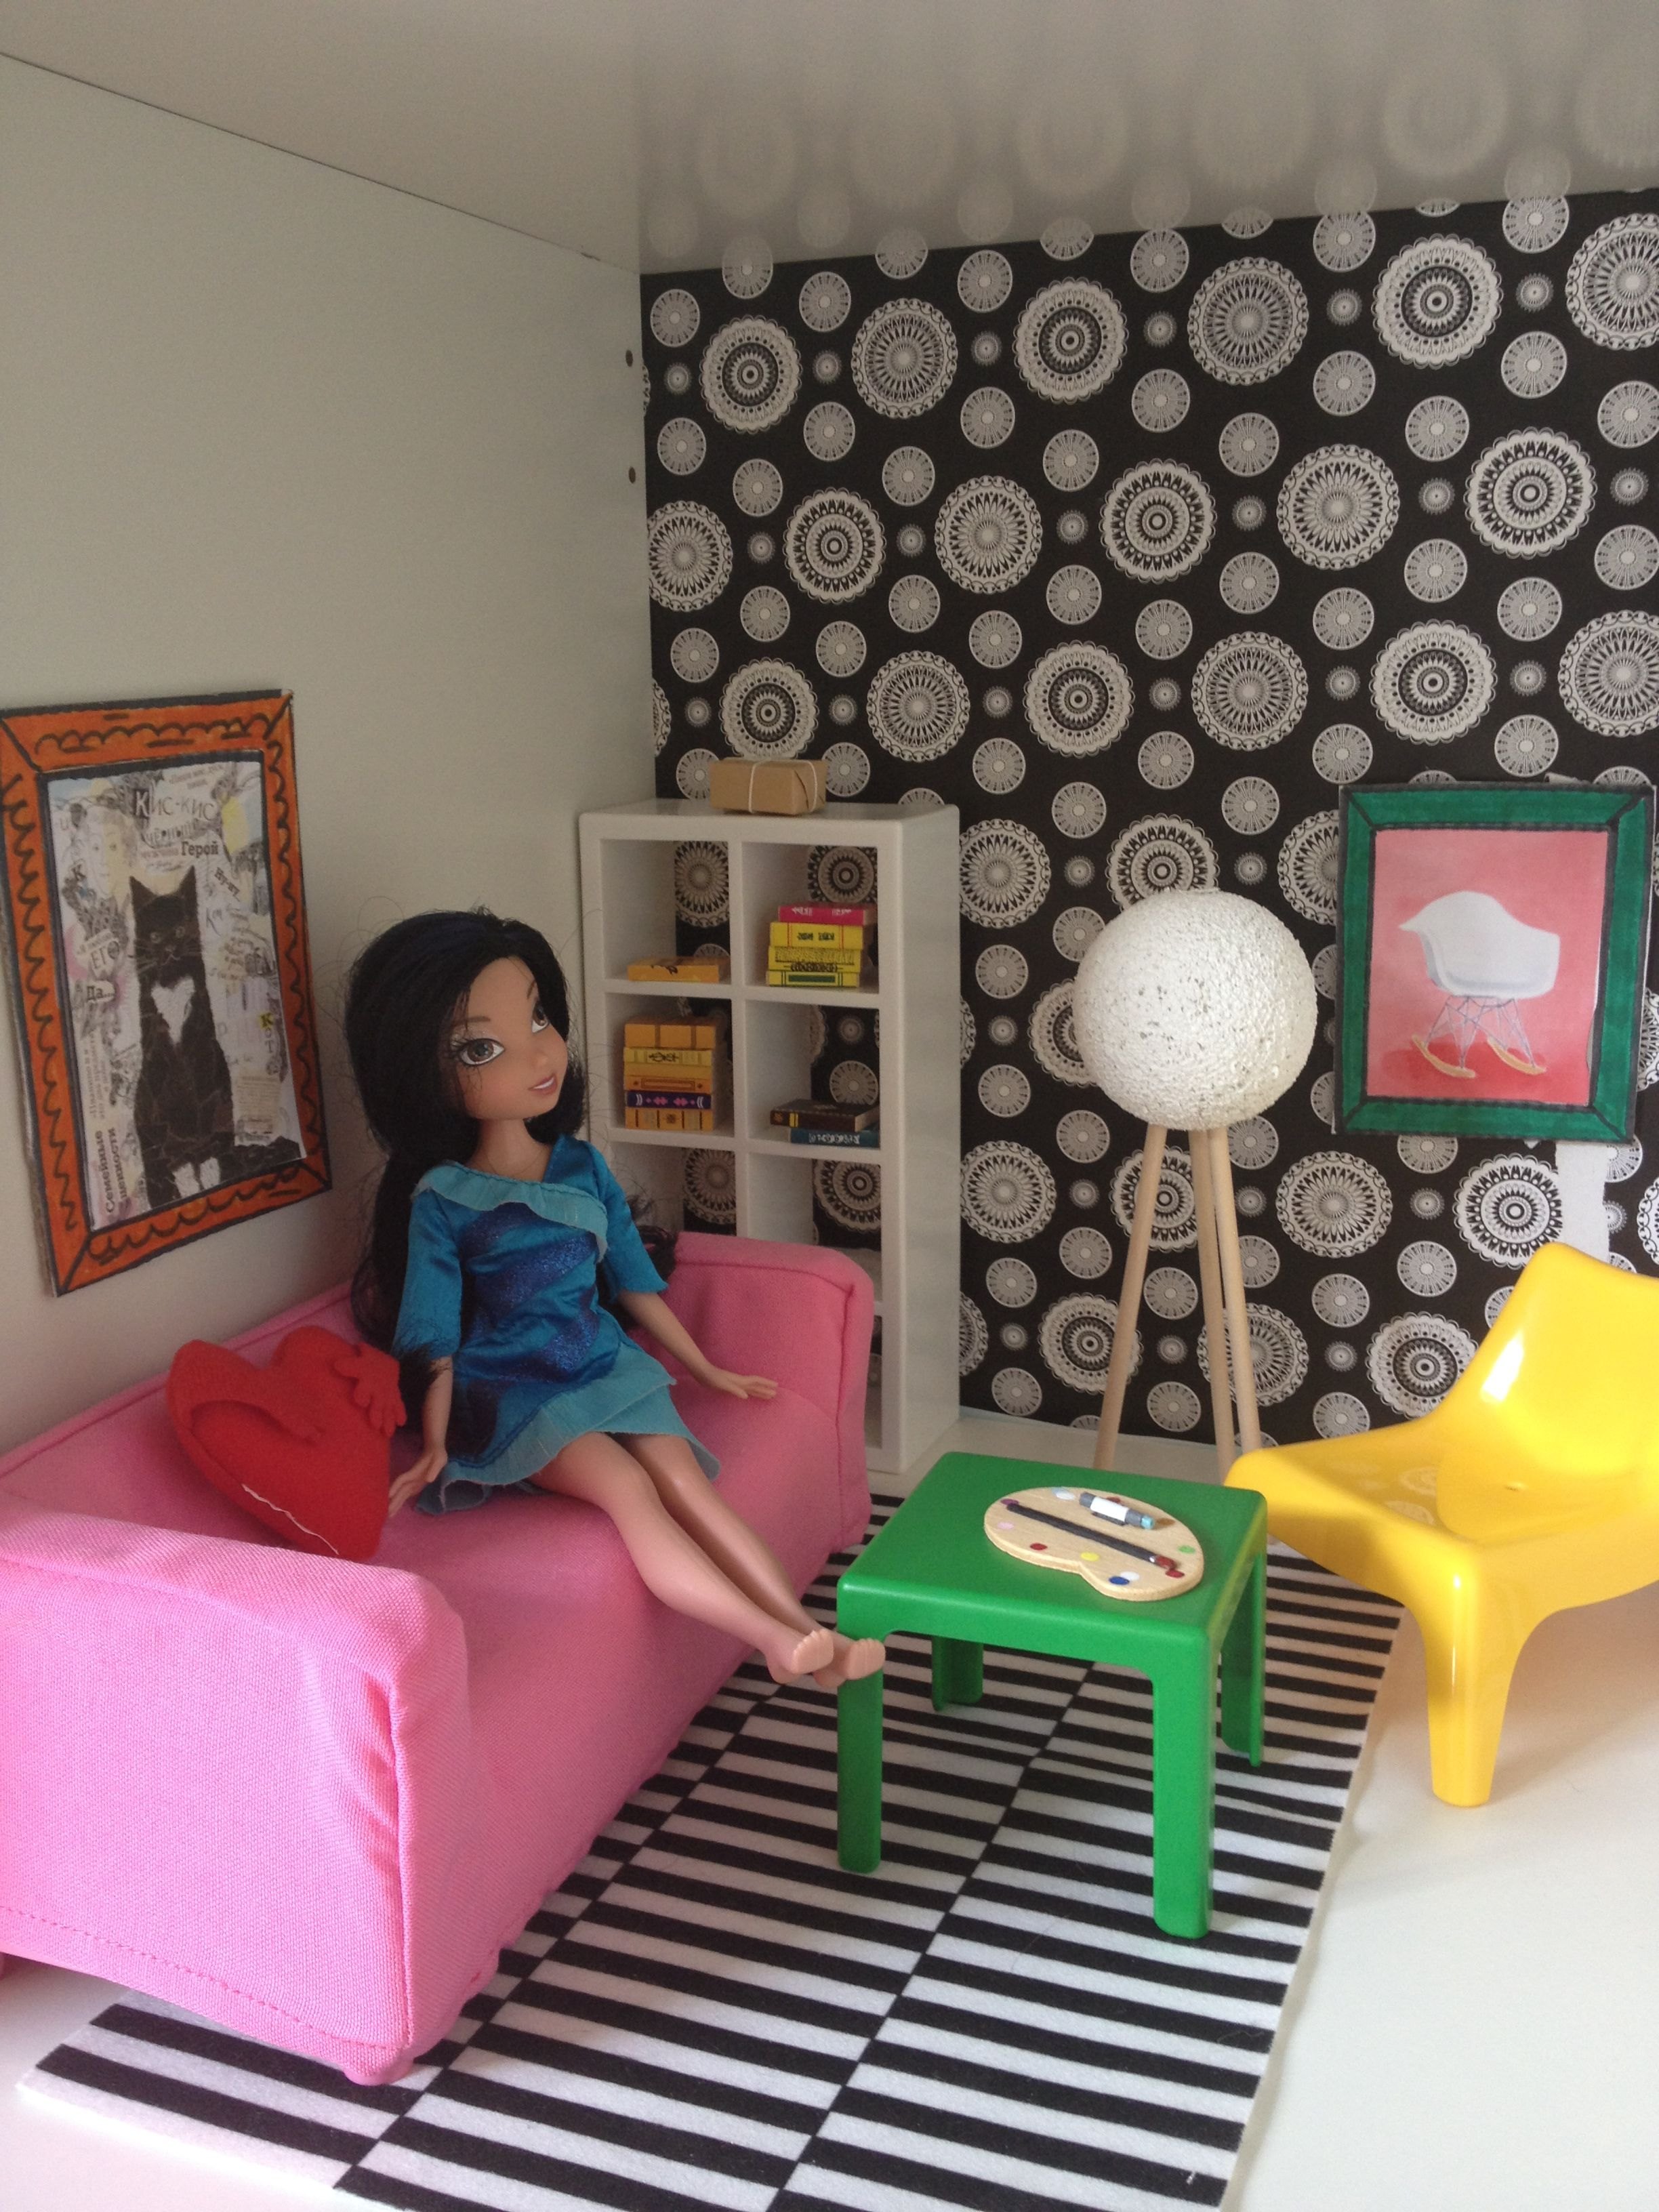 Dollhouse Living Room  With IKEA Dollhouse Furniture And DIY Pieces!